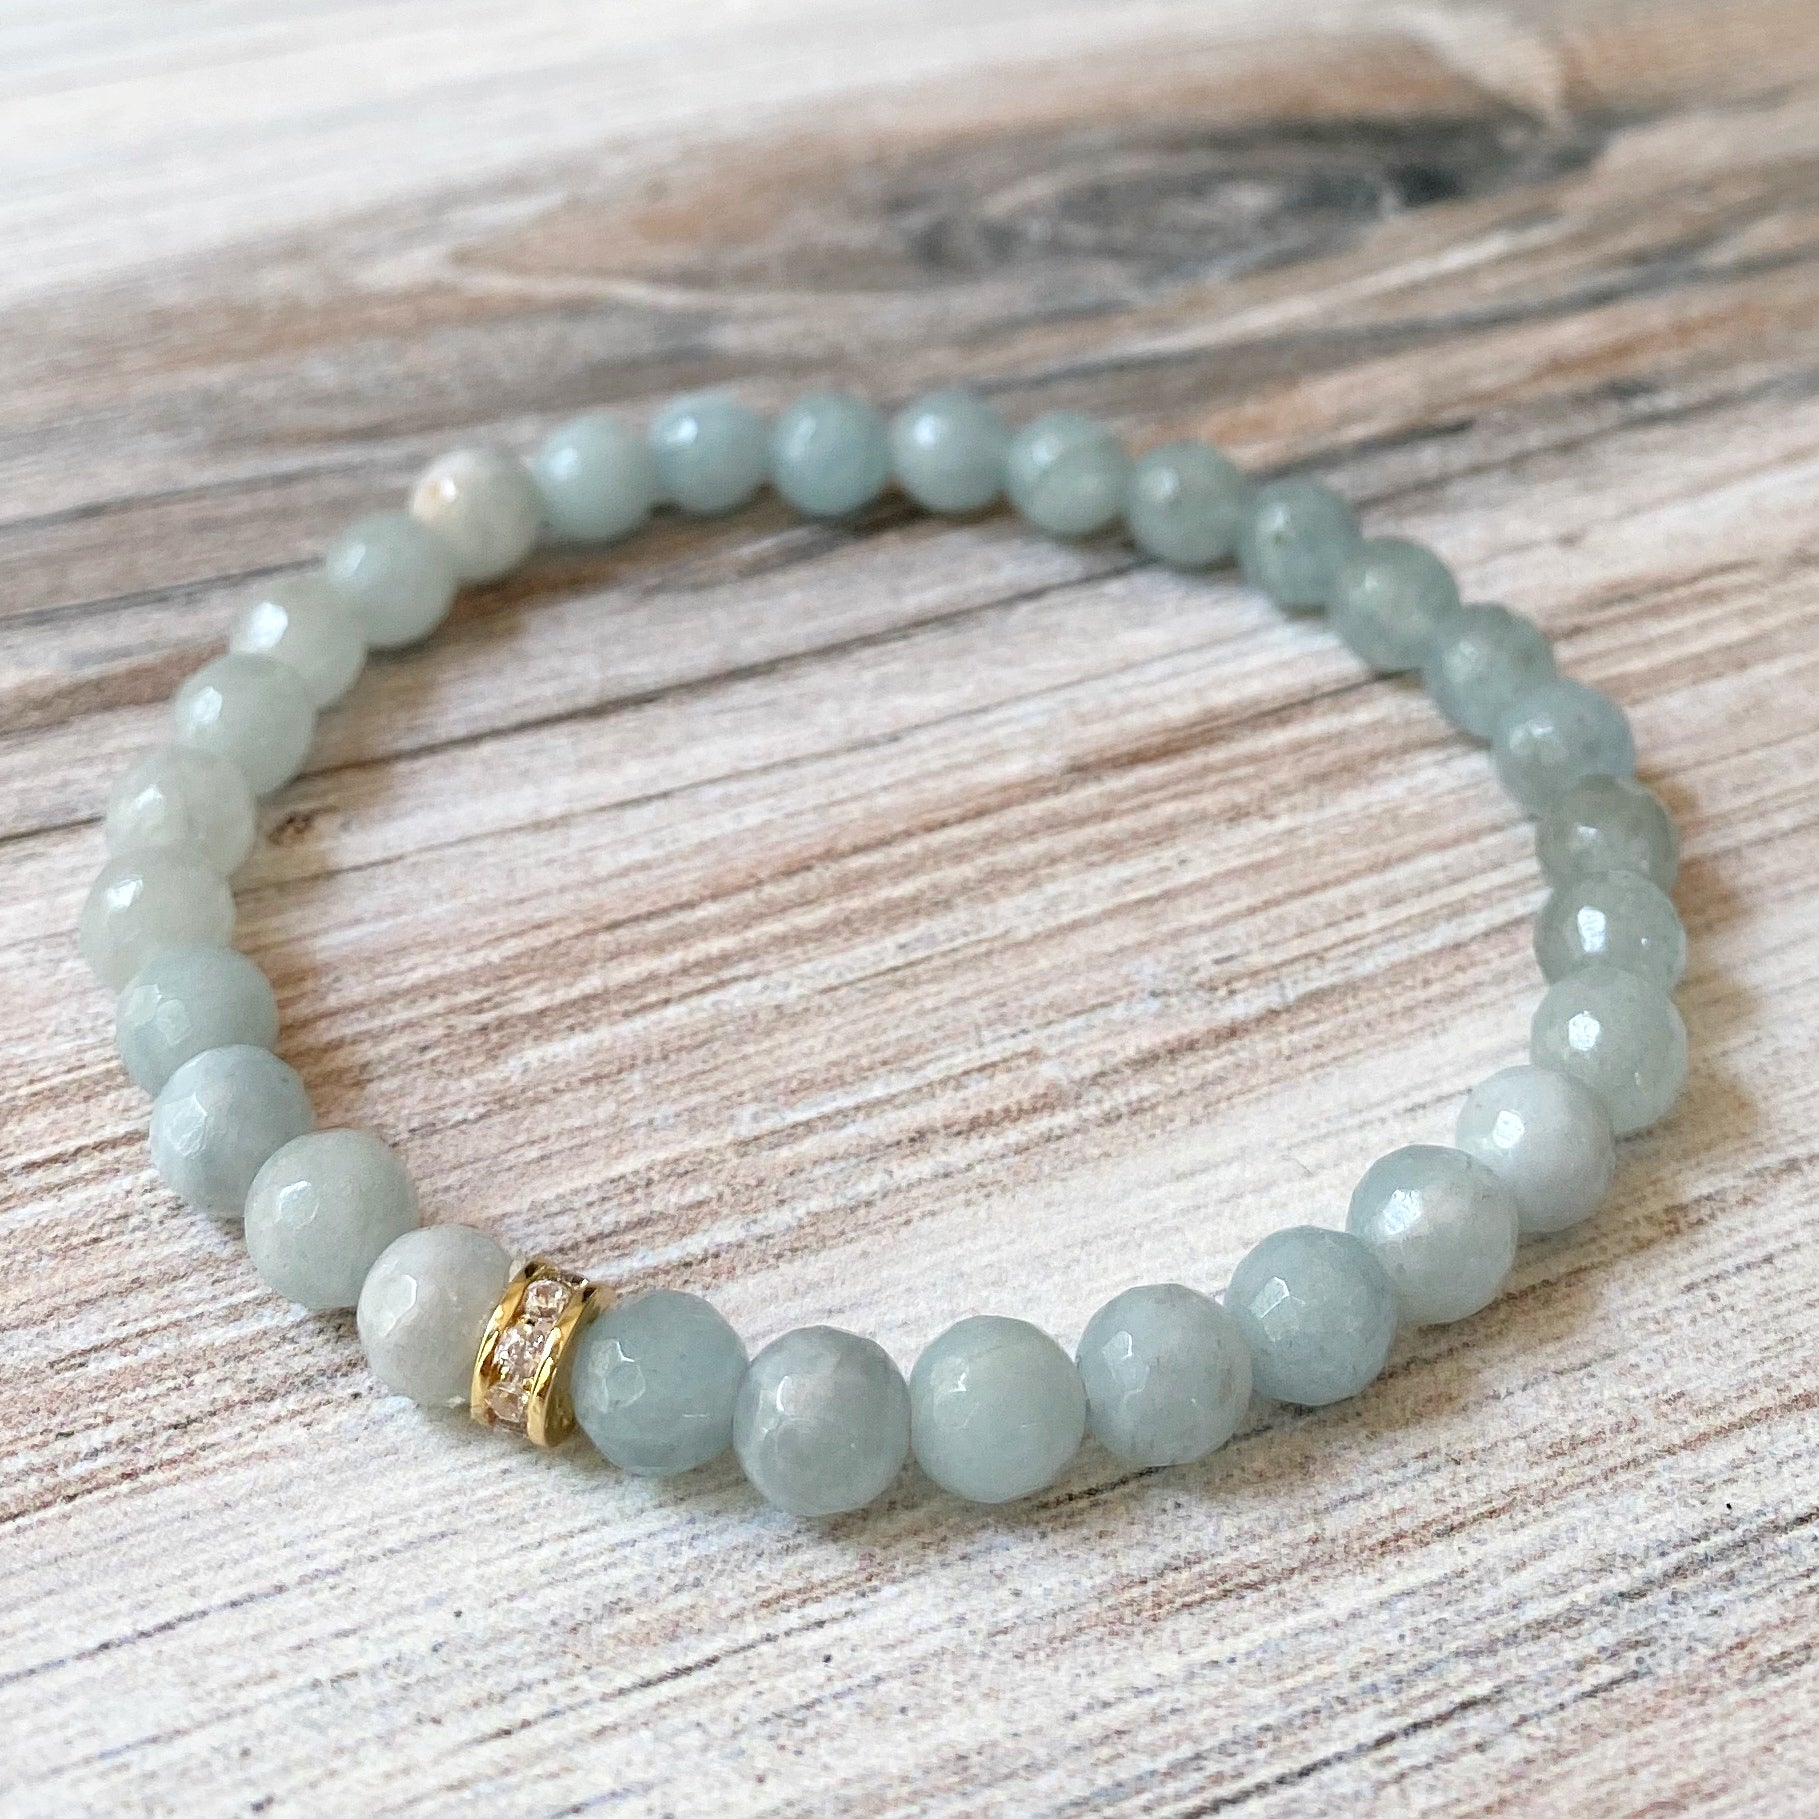 Gemstone Stretch Bracelet, Sky Blue Aquamarine